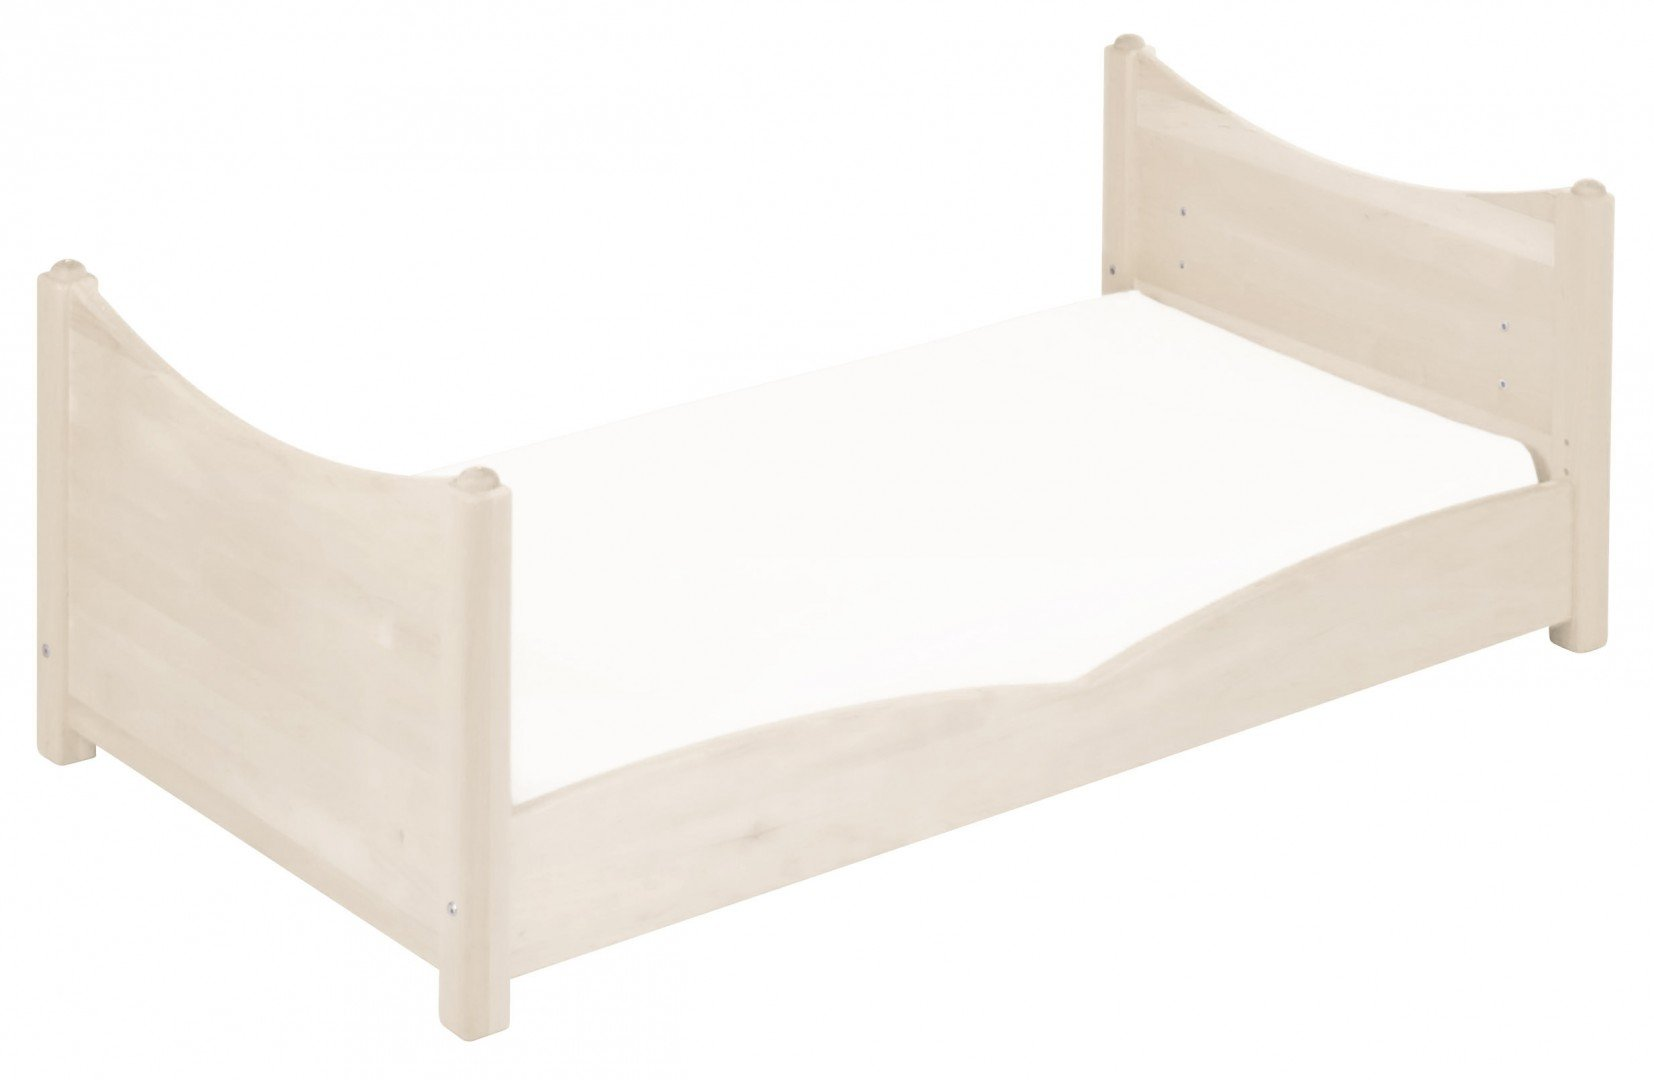 BioKinder 22128 Bed for babies and toddlers Luca from biological wood Bio-Kinder Bed Luca for Babies and Toddlers Adjustable height. 3 removable bars. Various features Sustainable solid biological wood (alder/pine). Biological finish 7